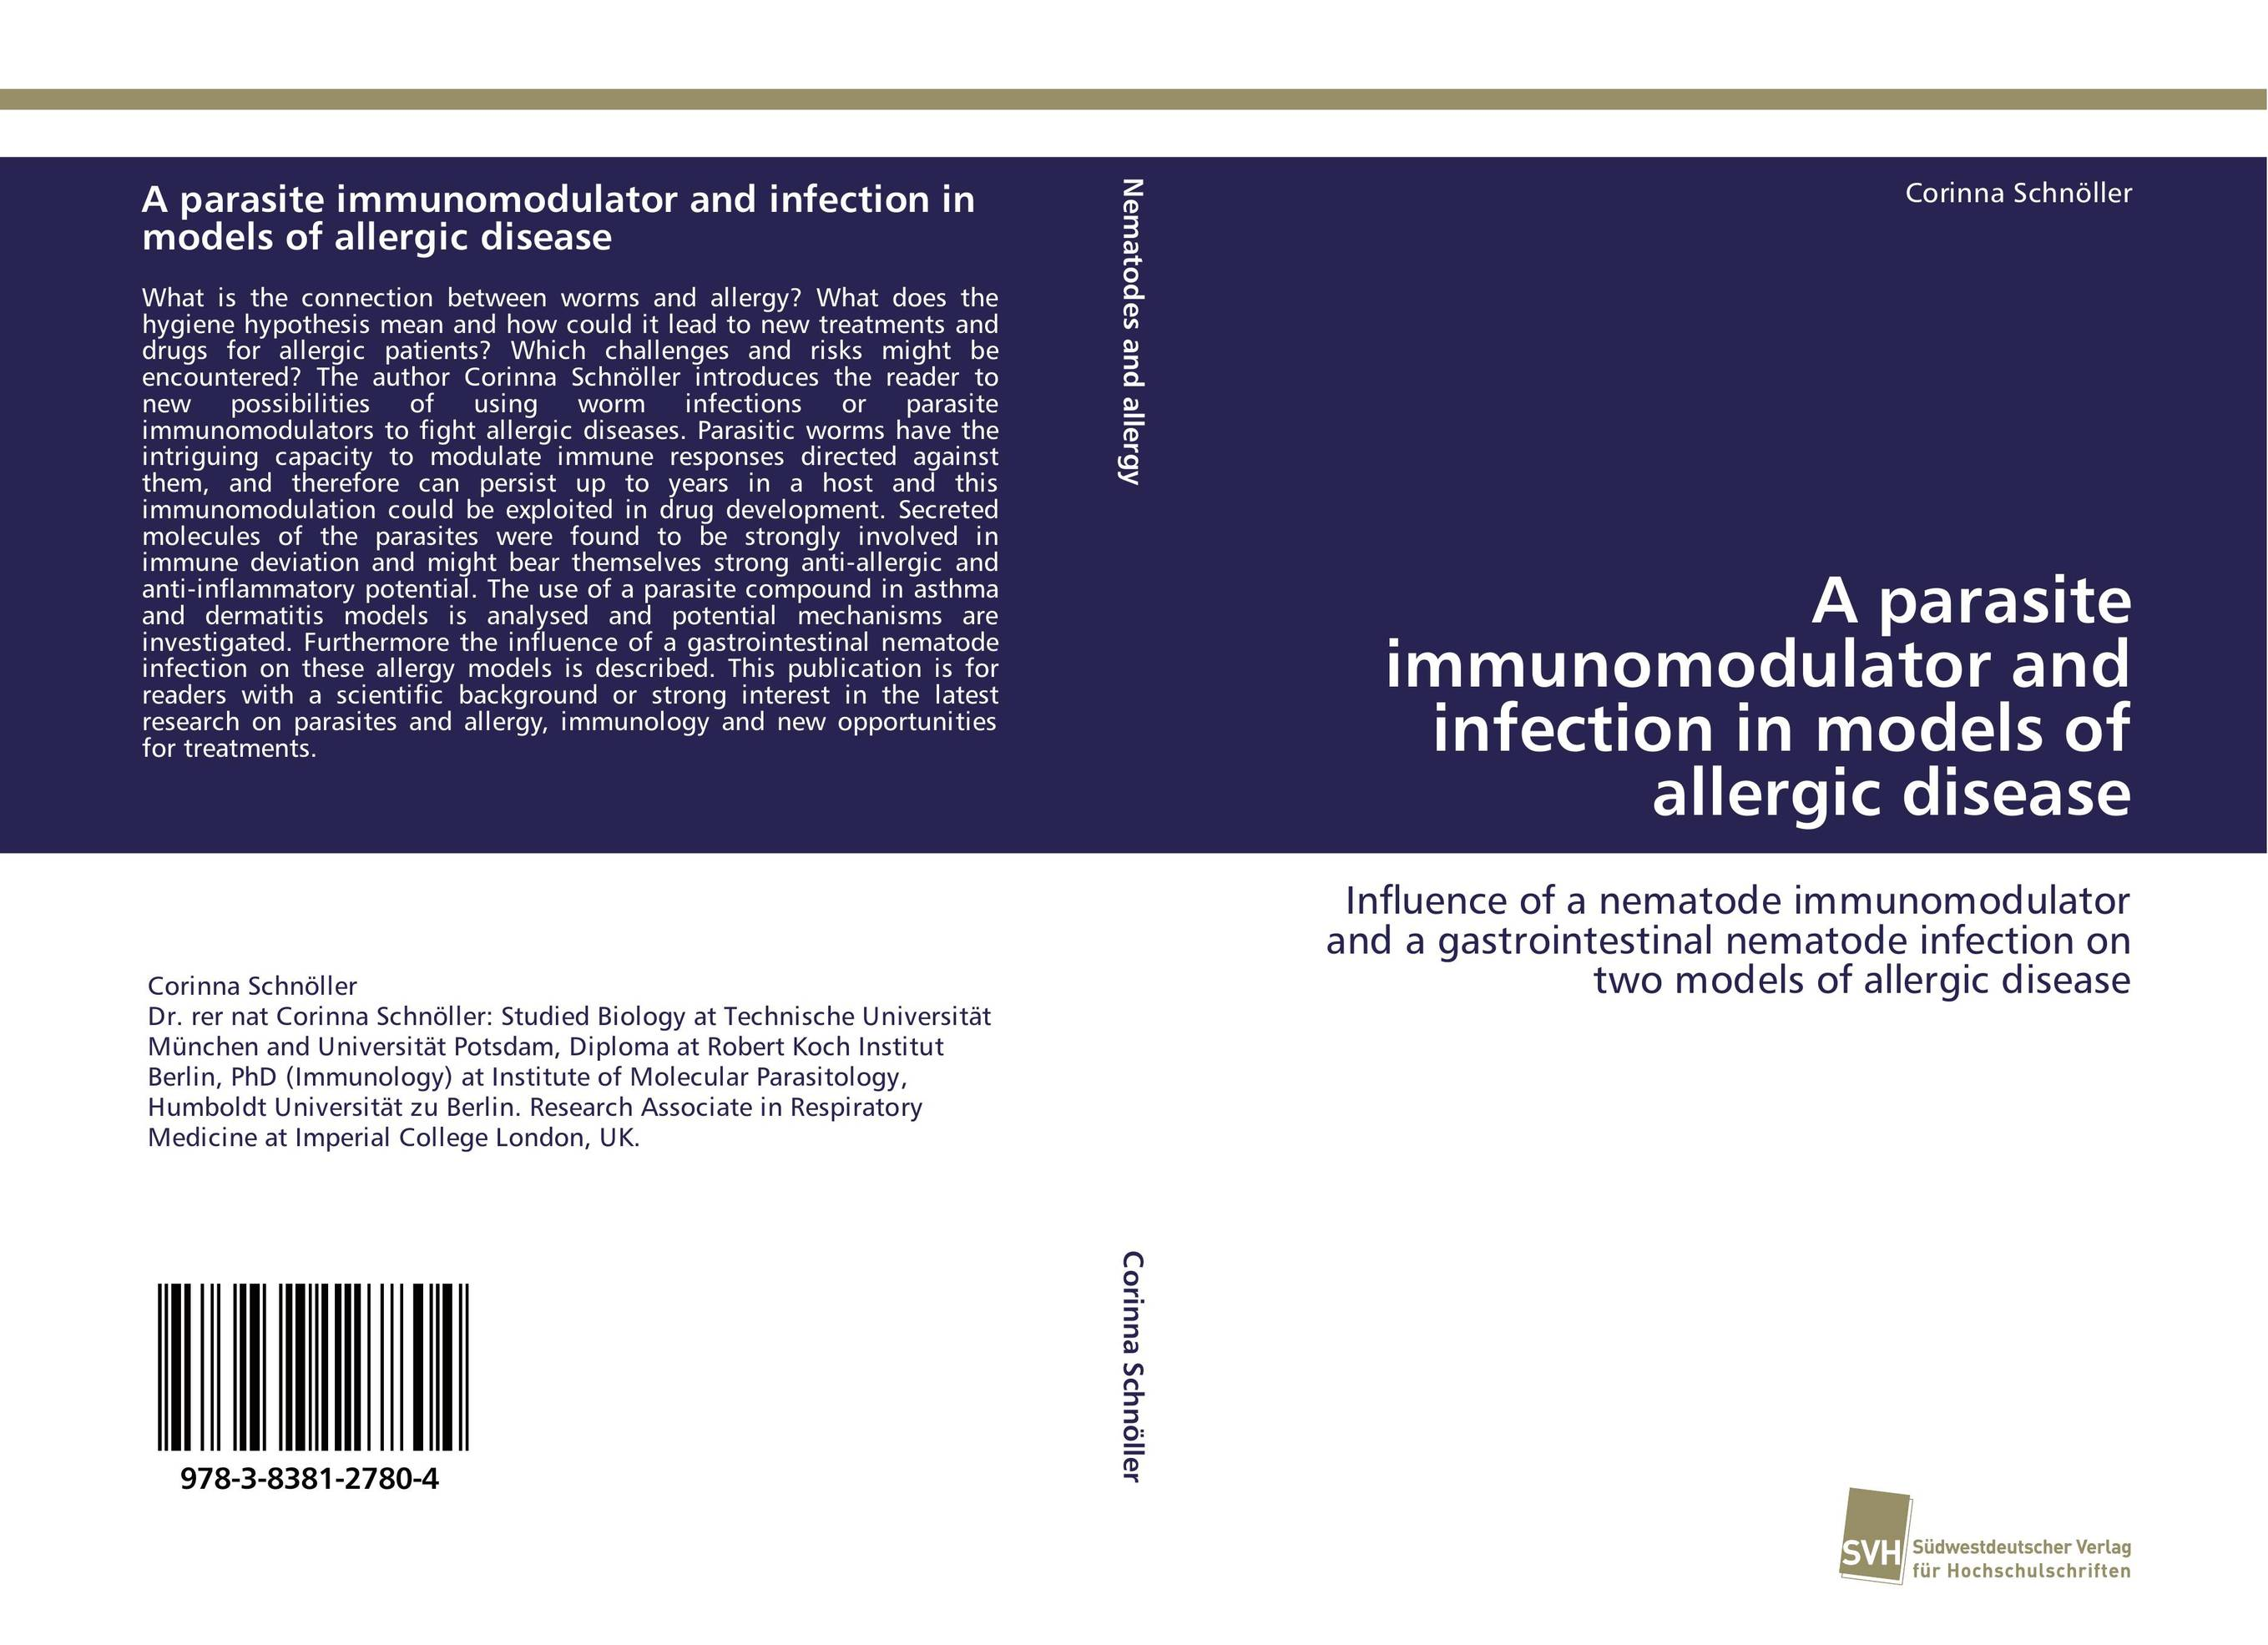 A parasite immunomodulator and infection in models of allergic disease home treatment for allergic rhinitis phototherapy light laser natural remedies for allergic rhinitis